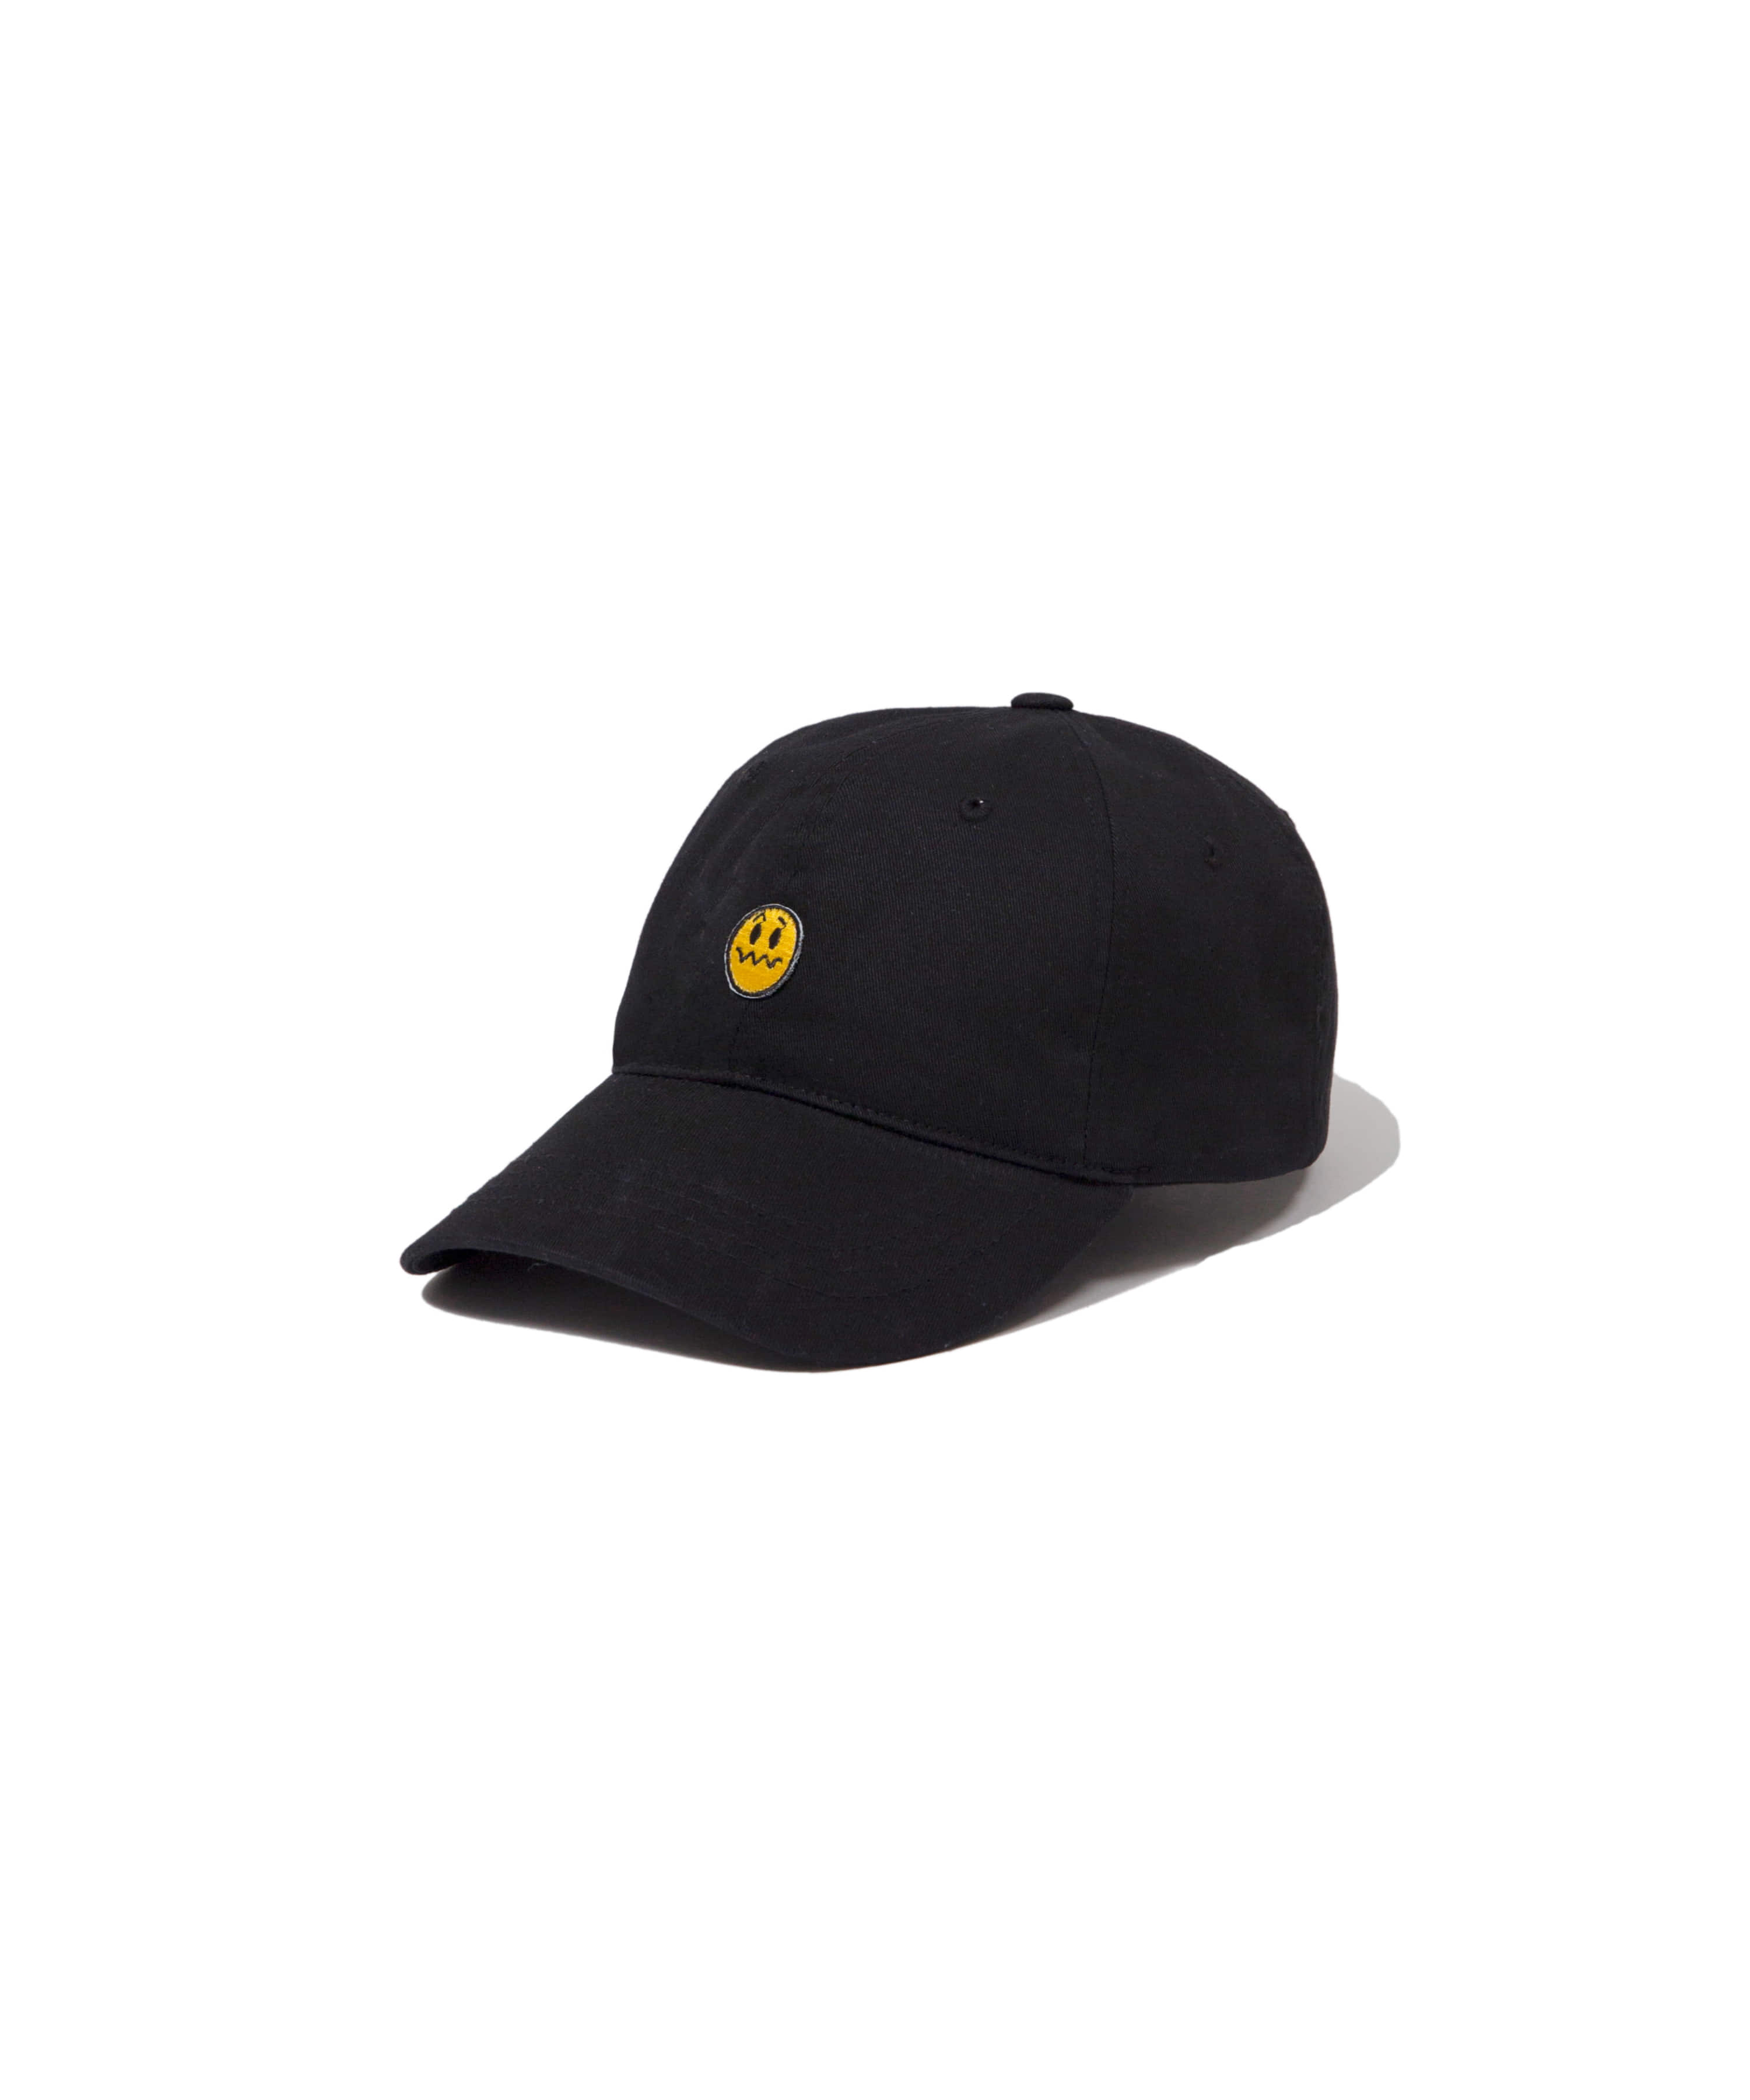 UNSMILE 6PANEL BALL CAP BLACK